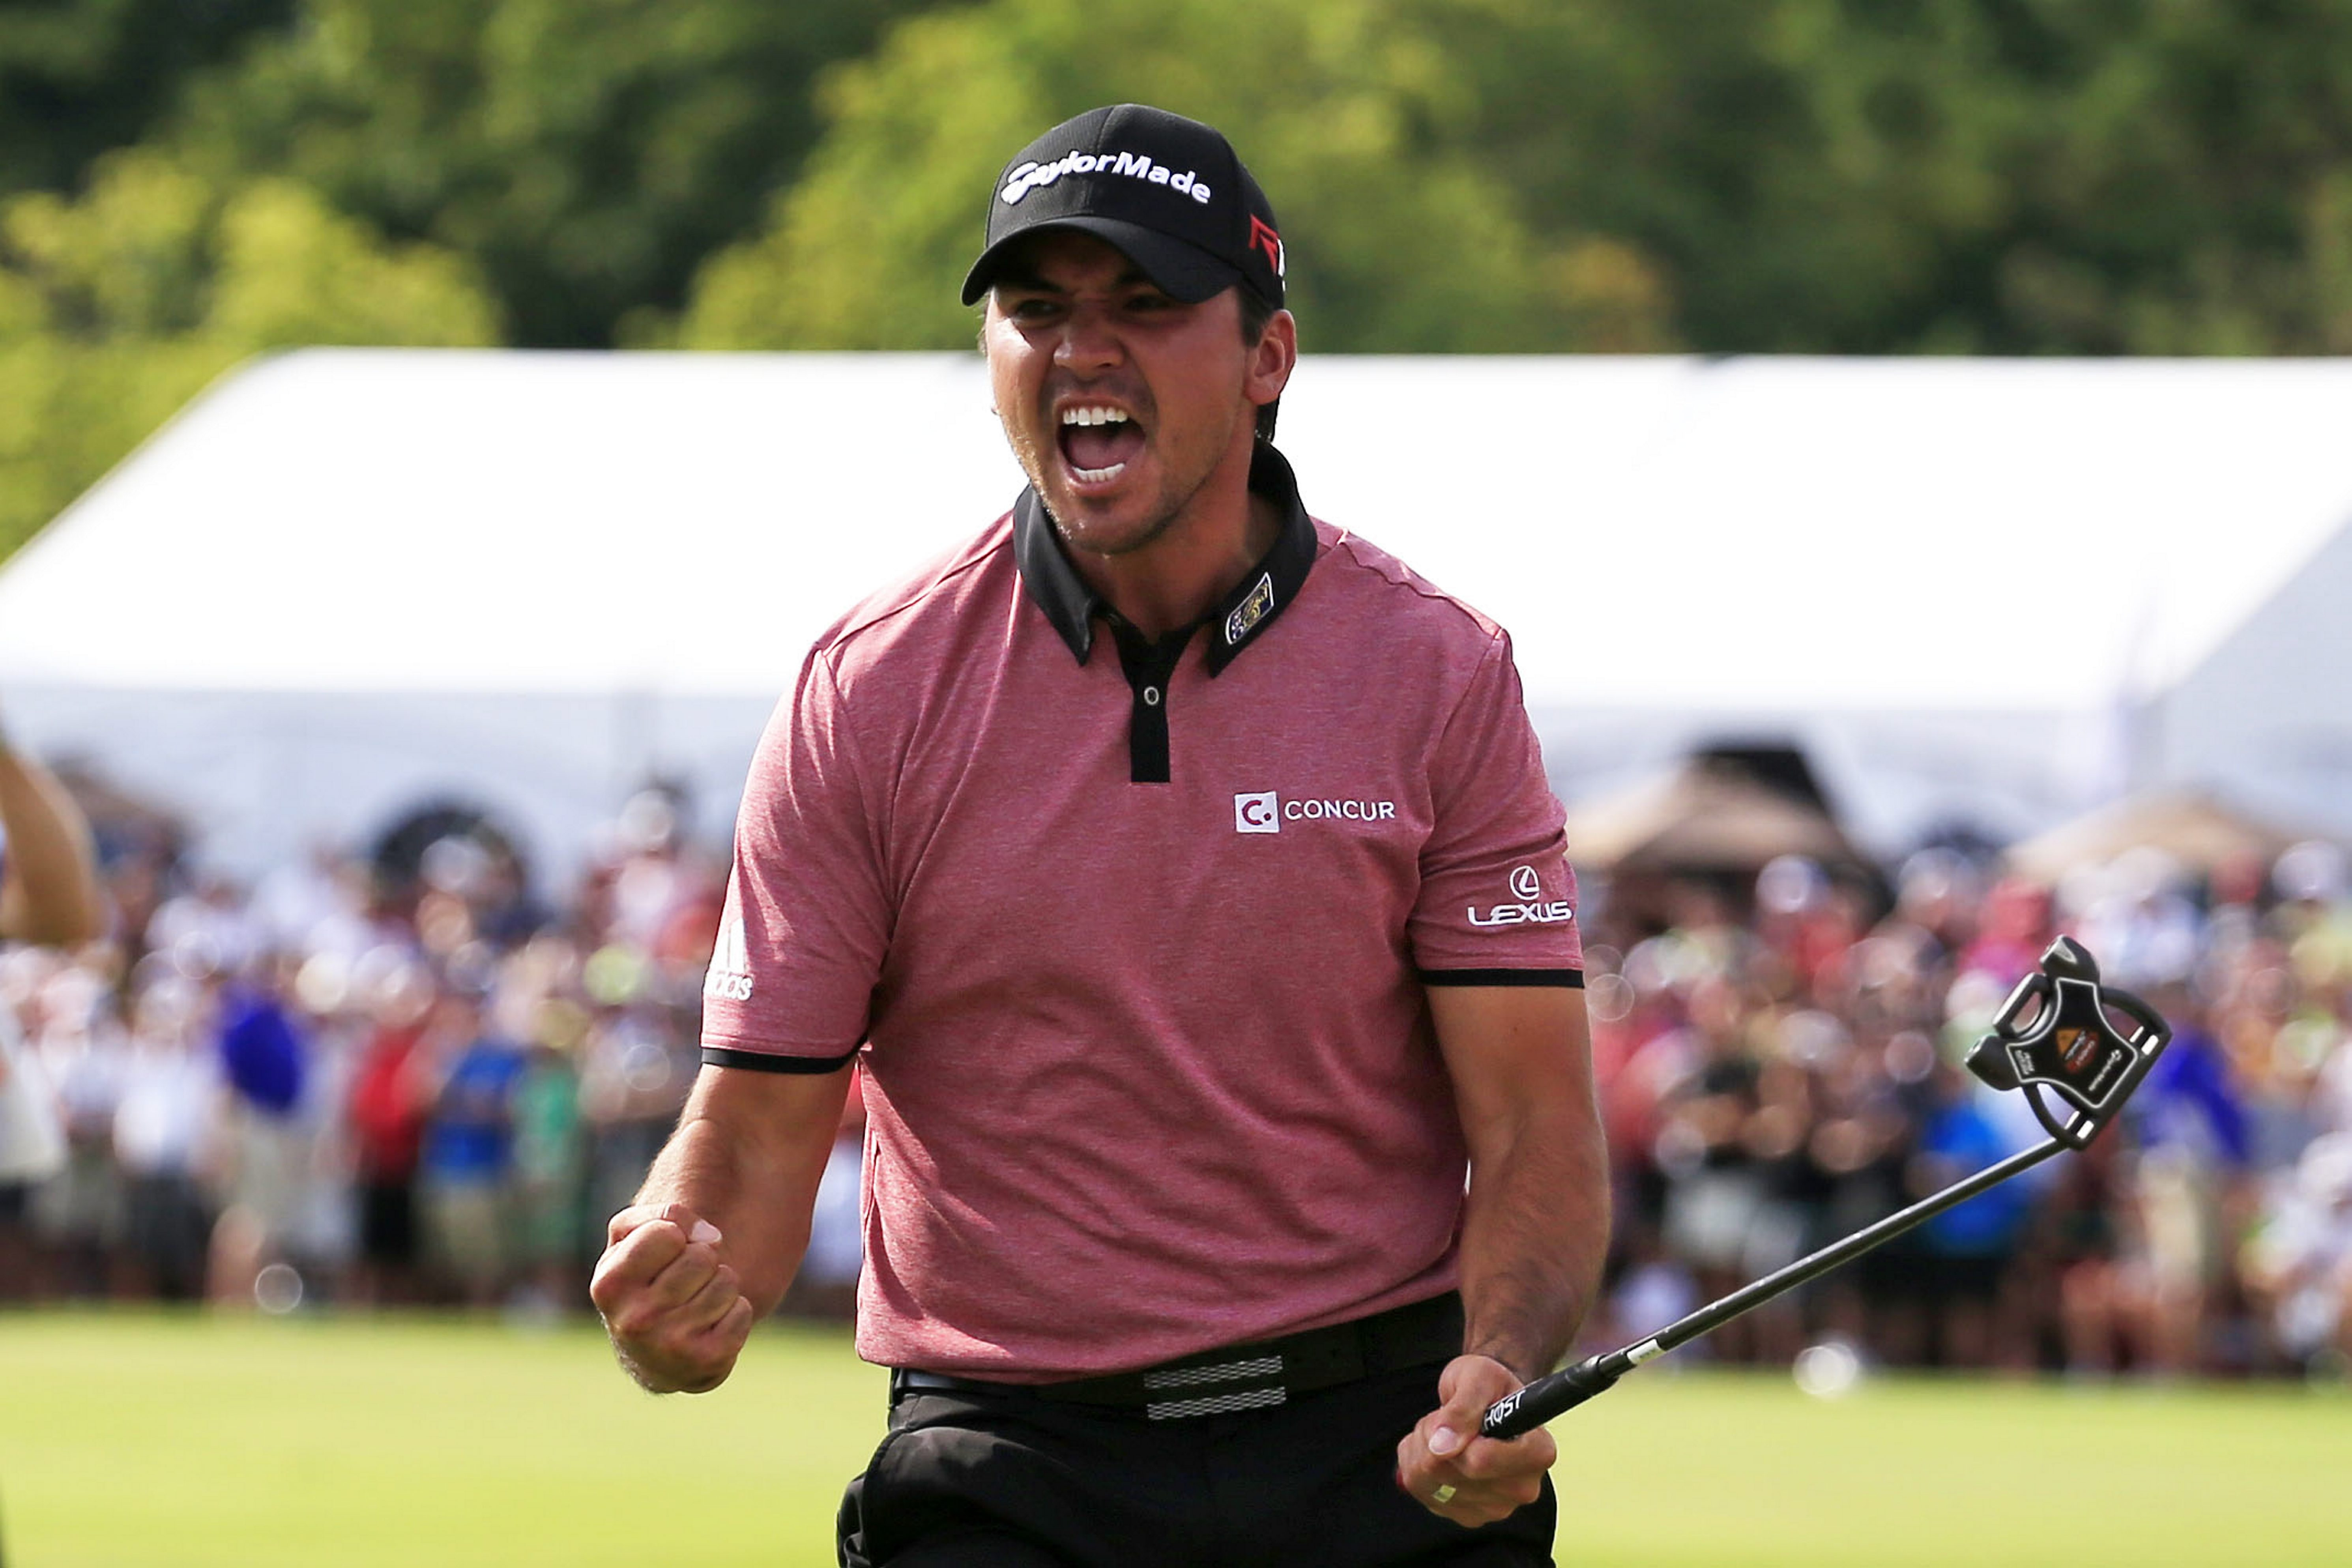 Jason Day's putt for birdie on the 18th green proved decisive in the Canadian Open.